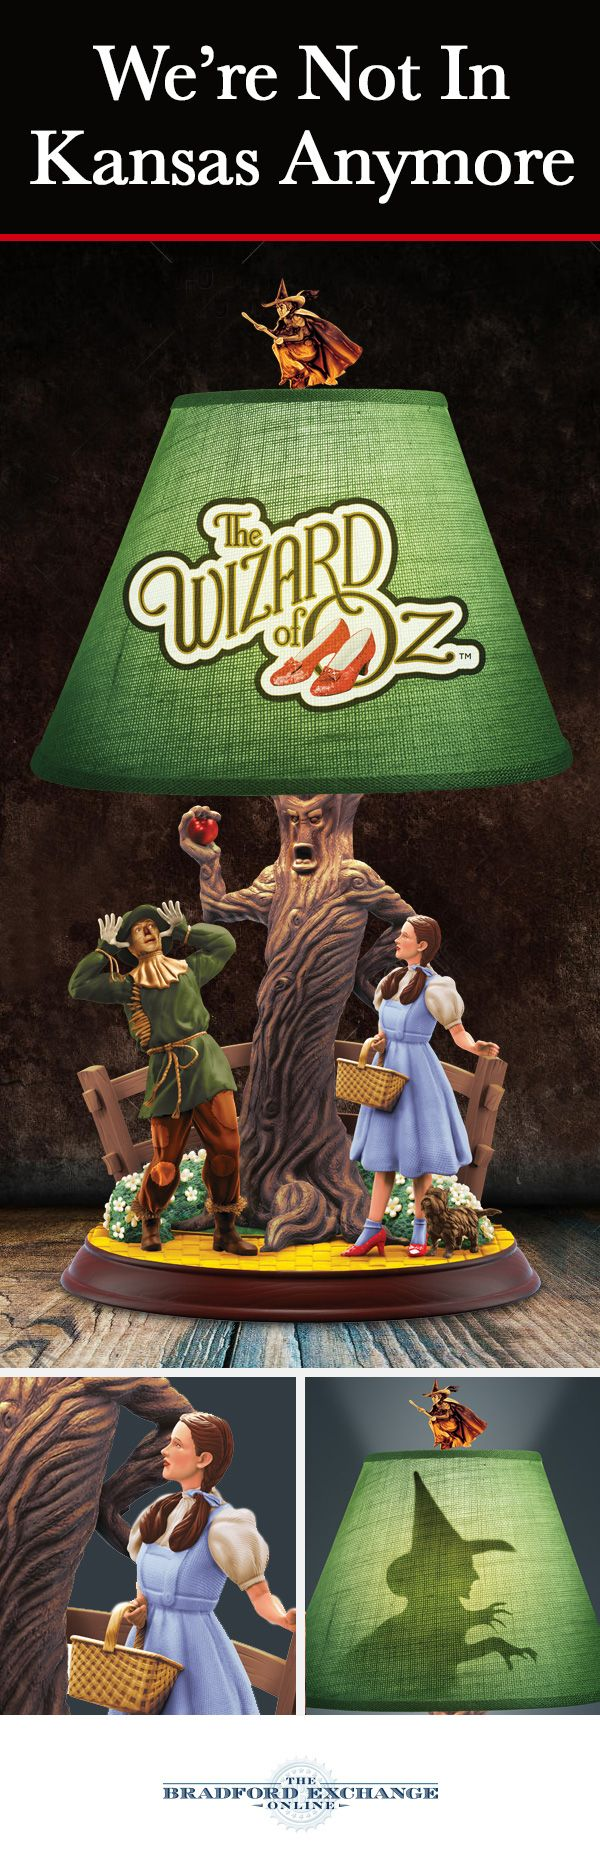 Relive a memorable moment from THE WIZARD OF OZ with the flick of a switch. This enchanting table lamp showcases a fully-sculpted scene between DORTHY and SCARECROW. Plus, a silhouette of the WICKED WITCH is revealed on the back of the custom shade when lit.